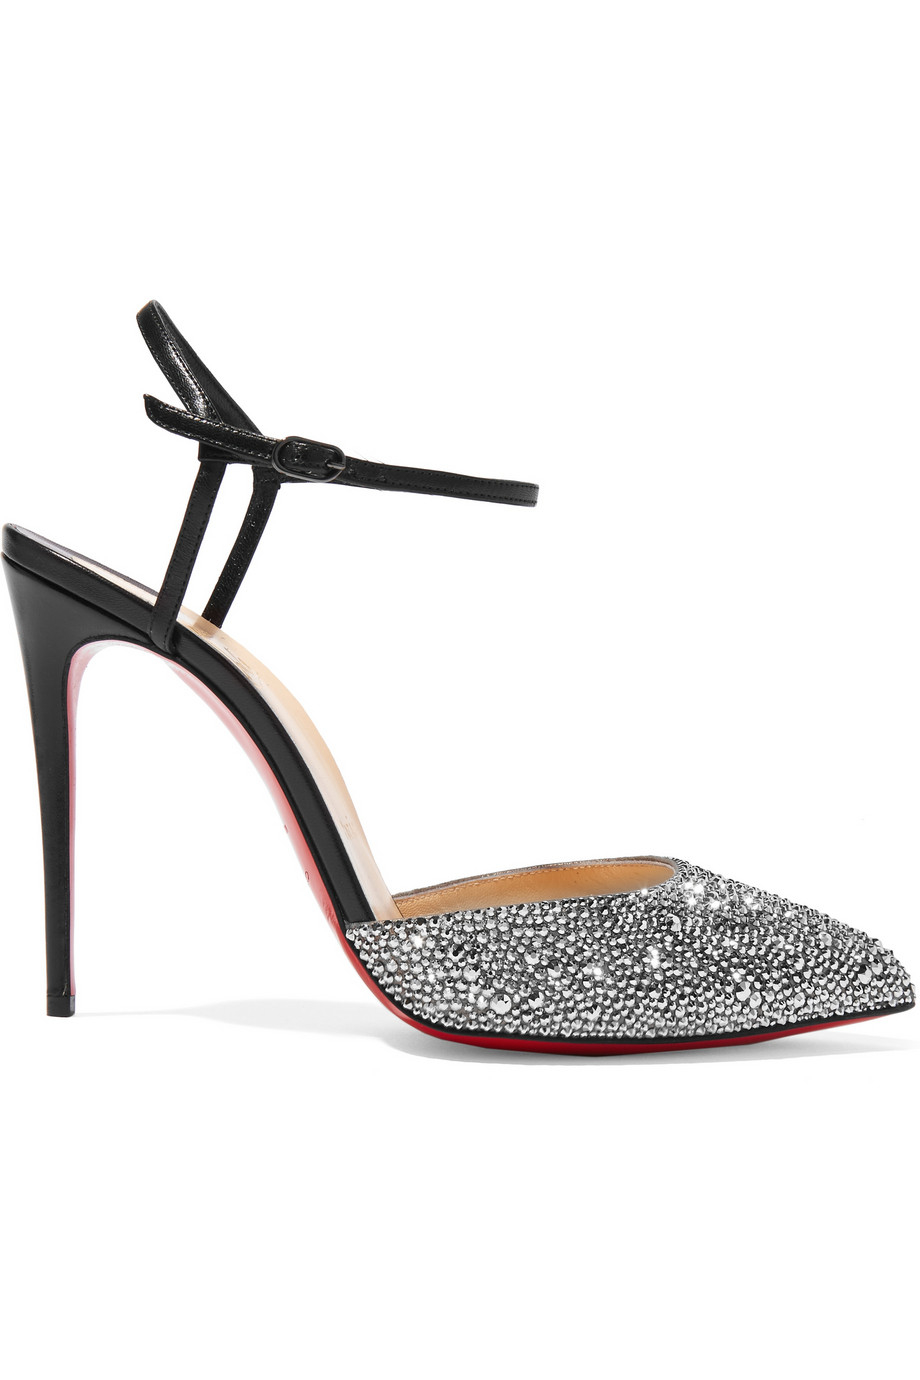 Christian louboutin Riverina 100 Crystal-embellished Leather Pumps ...